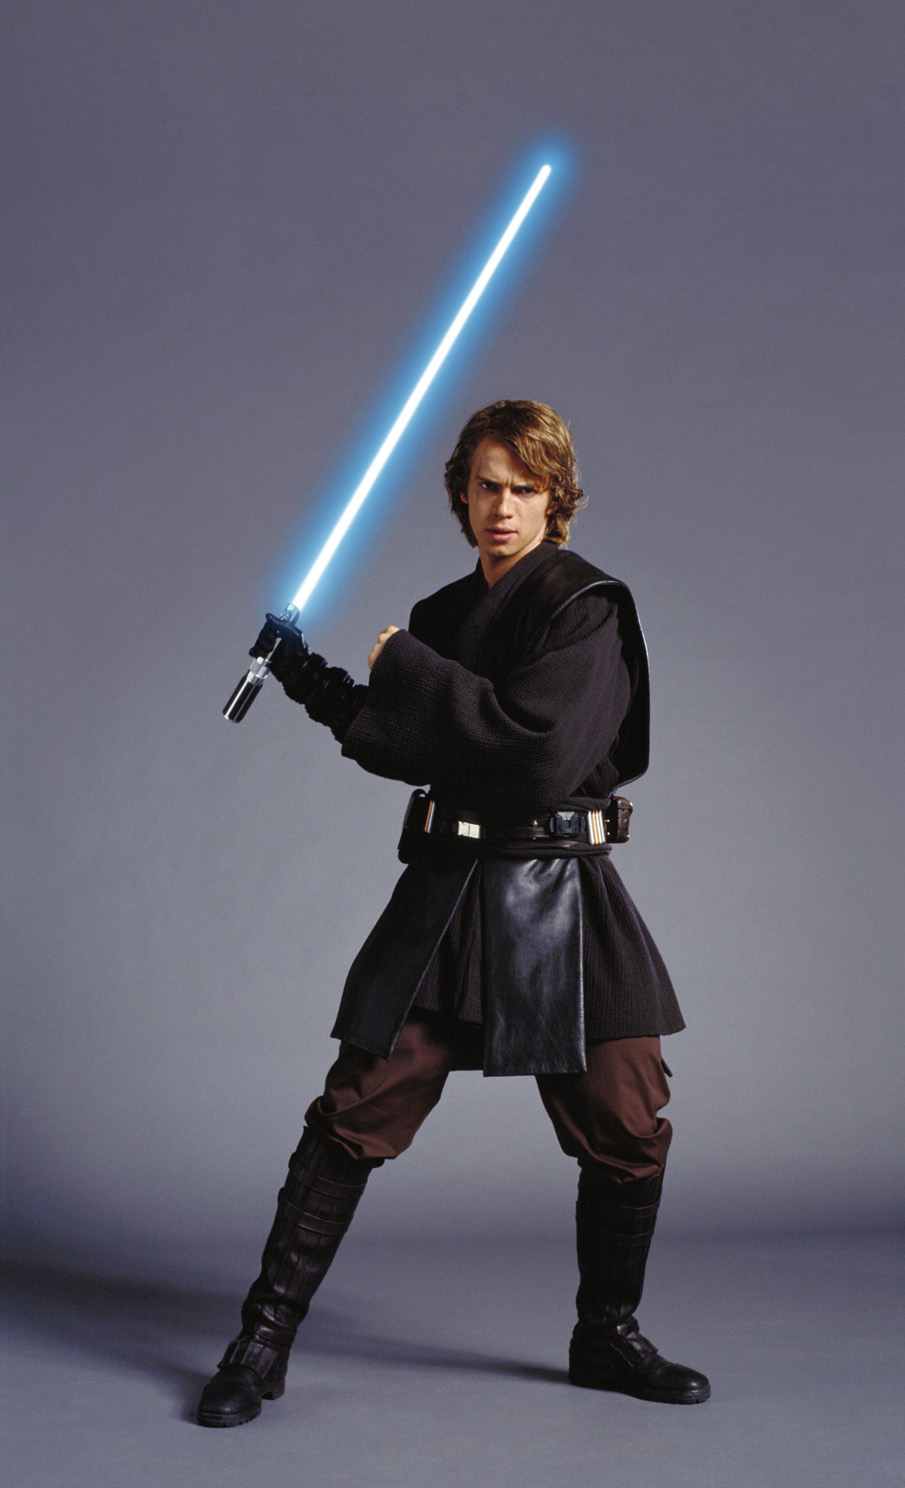 Anakin Skywalker - Anakin Skywalker Photo (17136865) - Fanpop